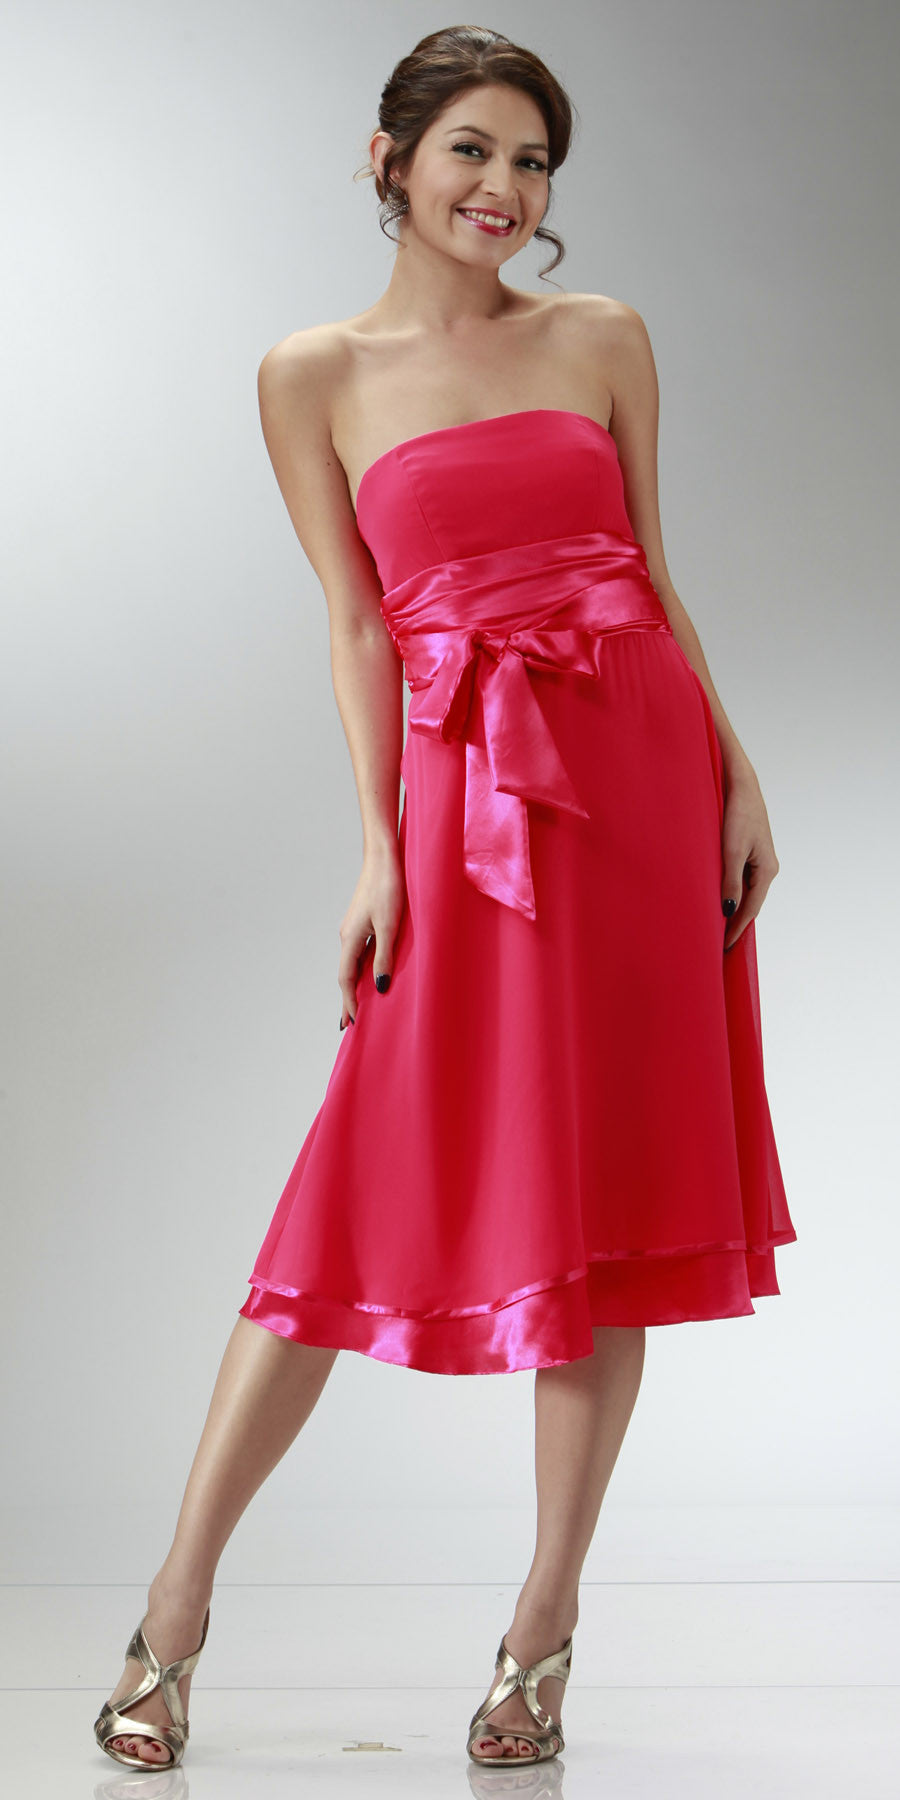 f28b63ccd5d ... Short Strapless Hot Pink Bridesmaid Dress With Bow Knee Length. Tap to  expand